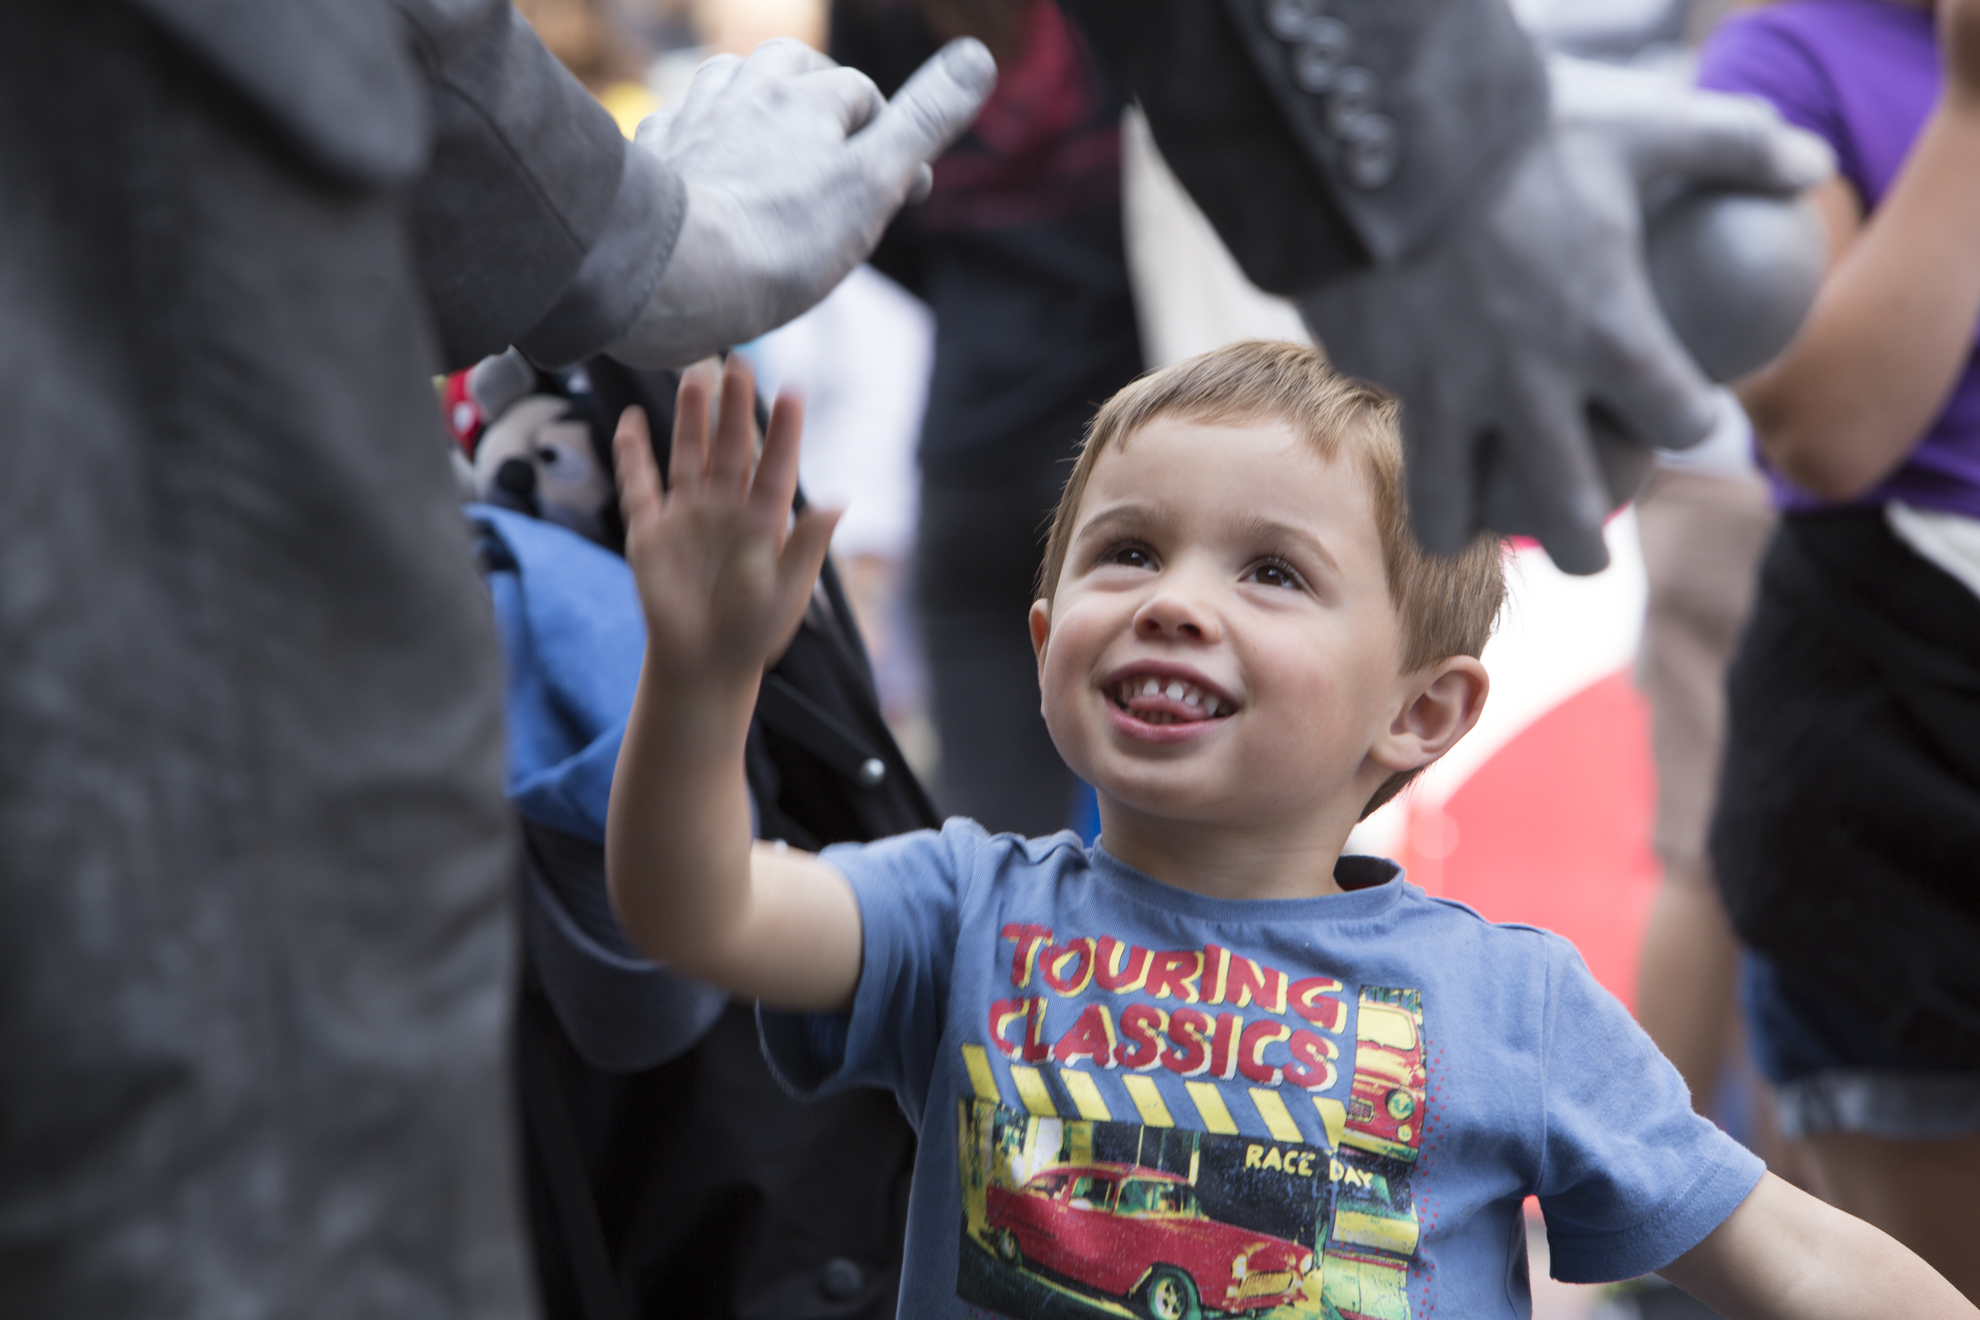 Ollie Bathgate, 2, from Edinburgh, give a high five to John Godbolt in front of St. Giles Cathedral on the Royal Mile during the 2014 Edinburgh Festival of the Fringe in Edinburgh, Scotland.